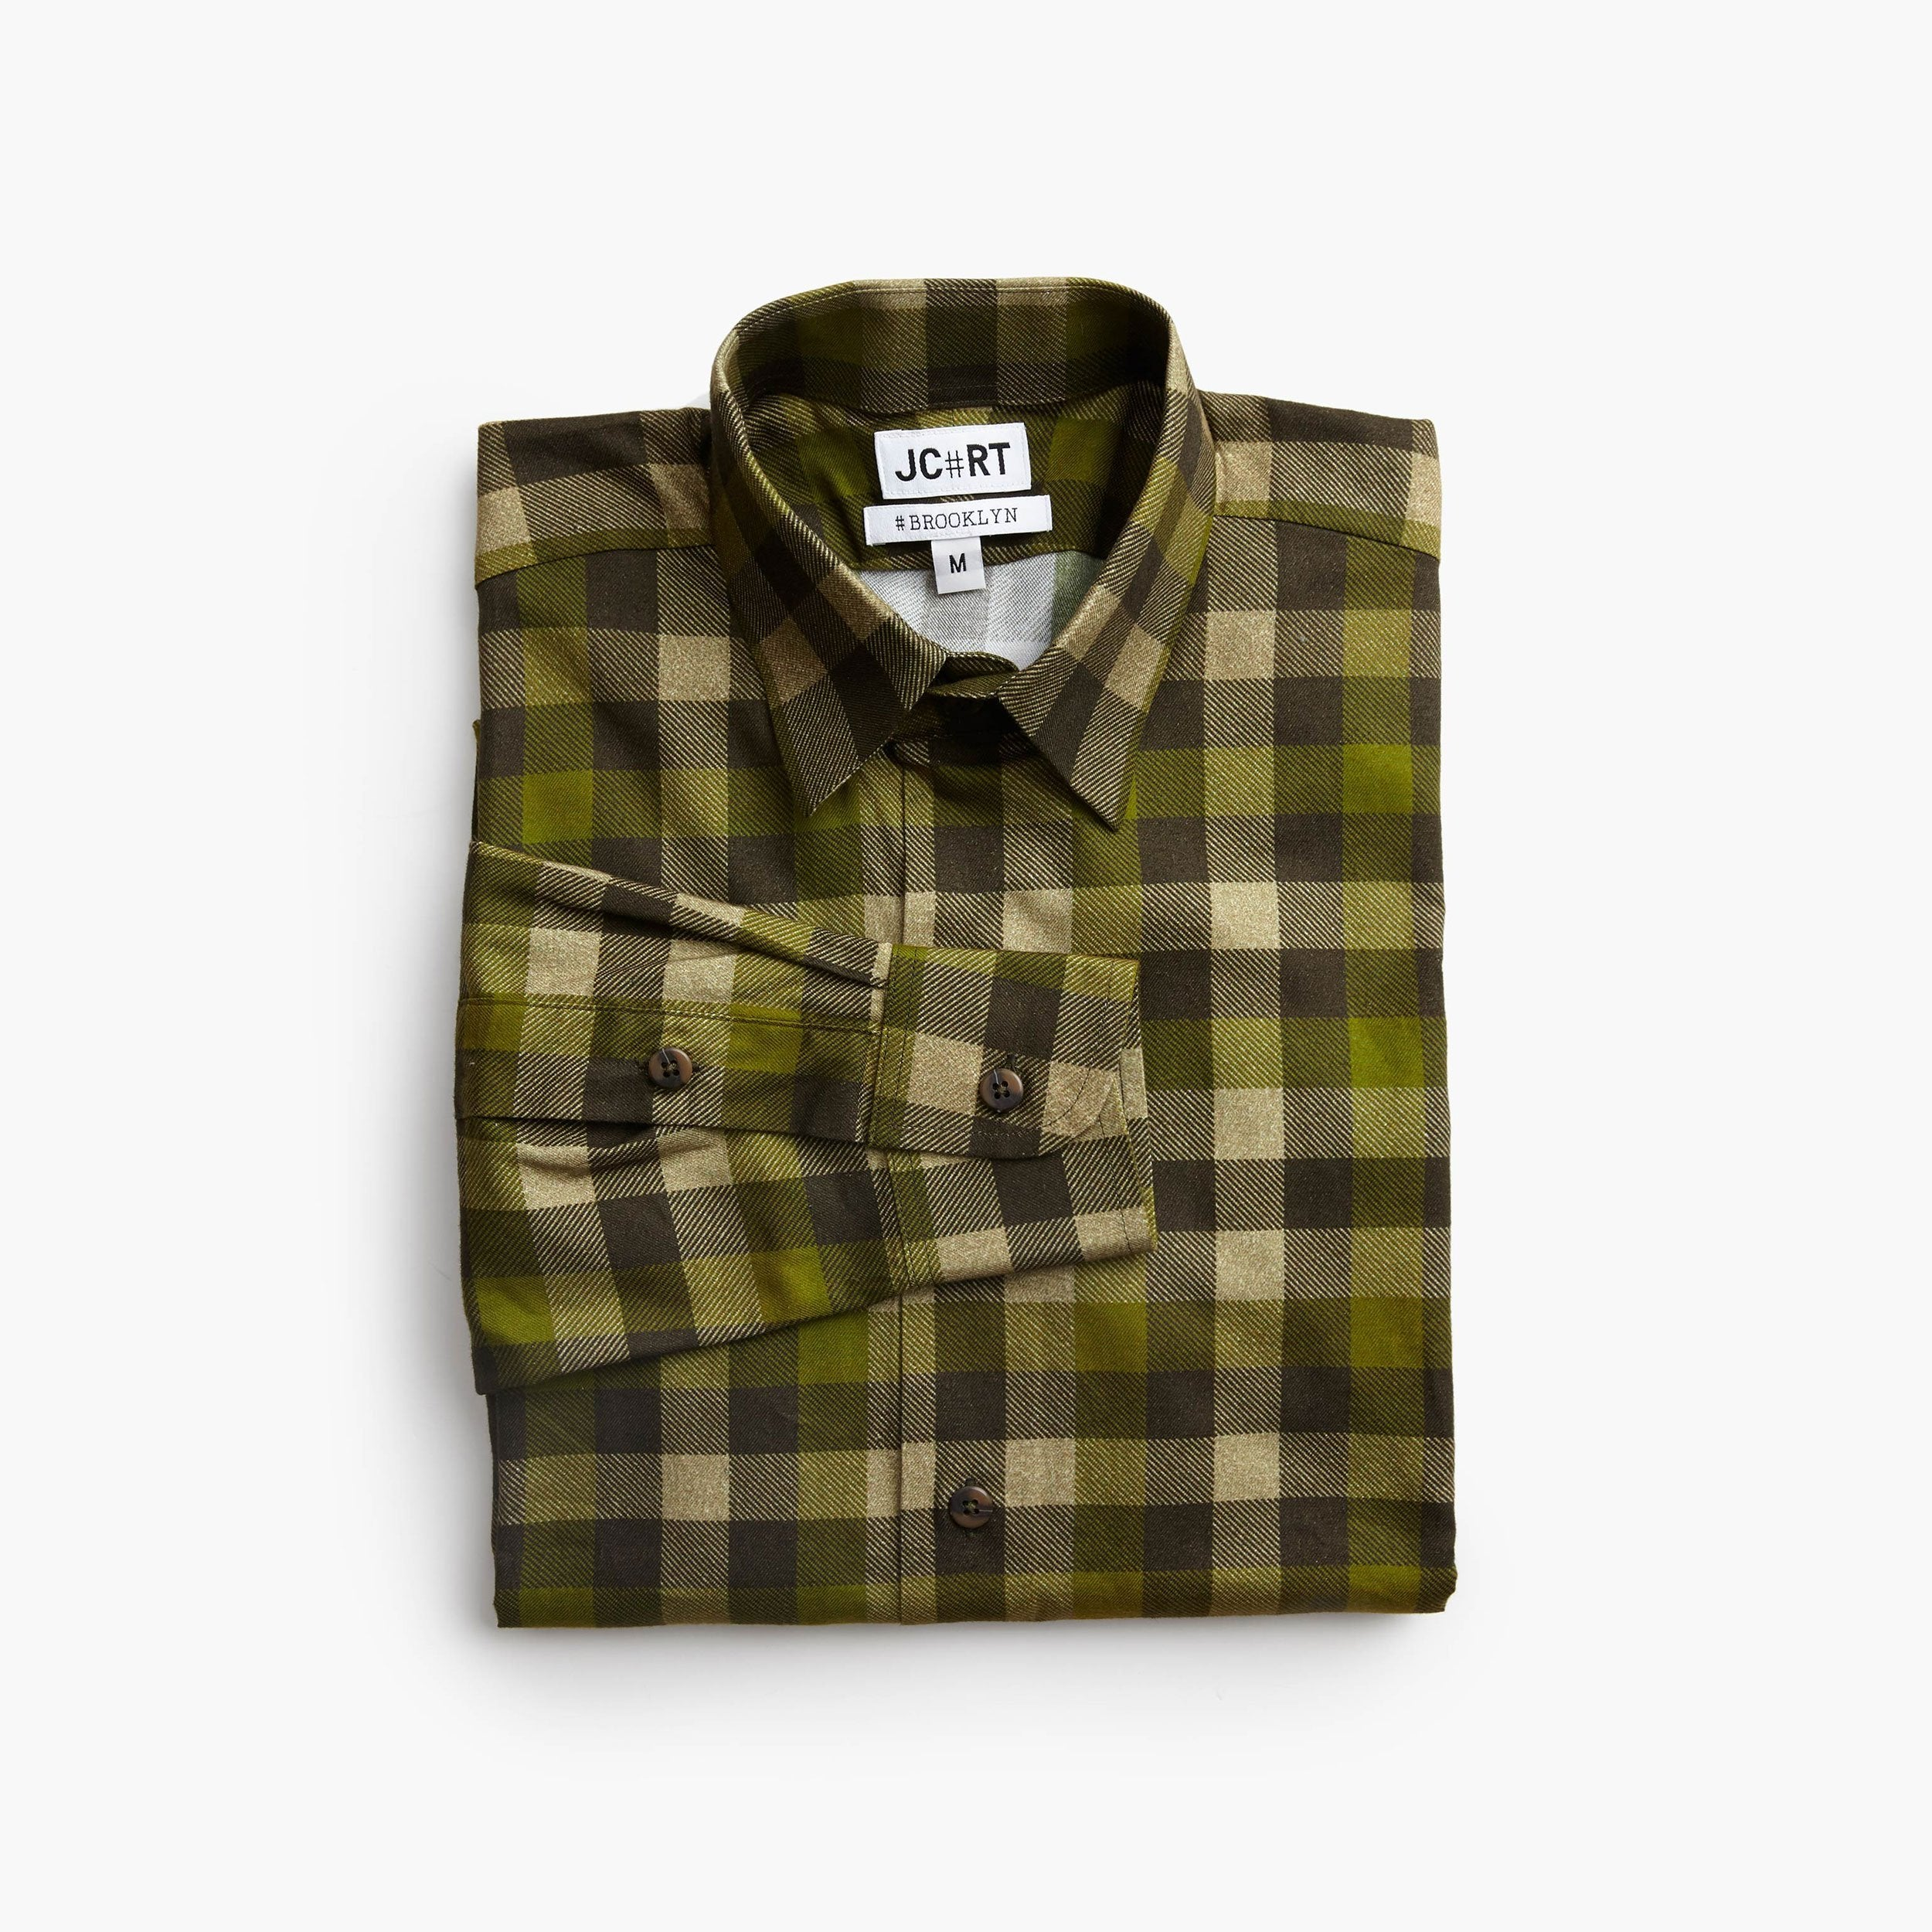 The WW2 Parachute Flannel Shirt